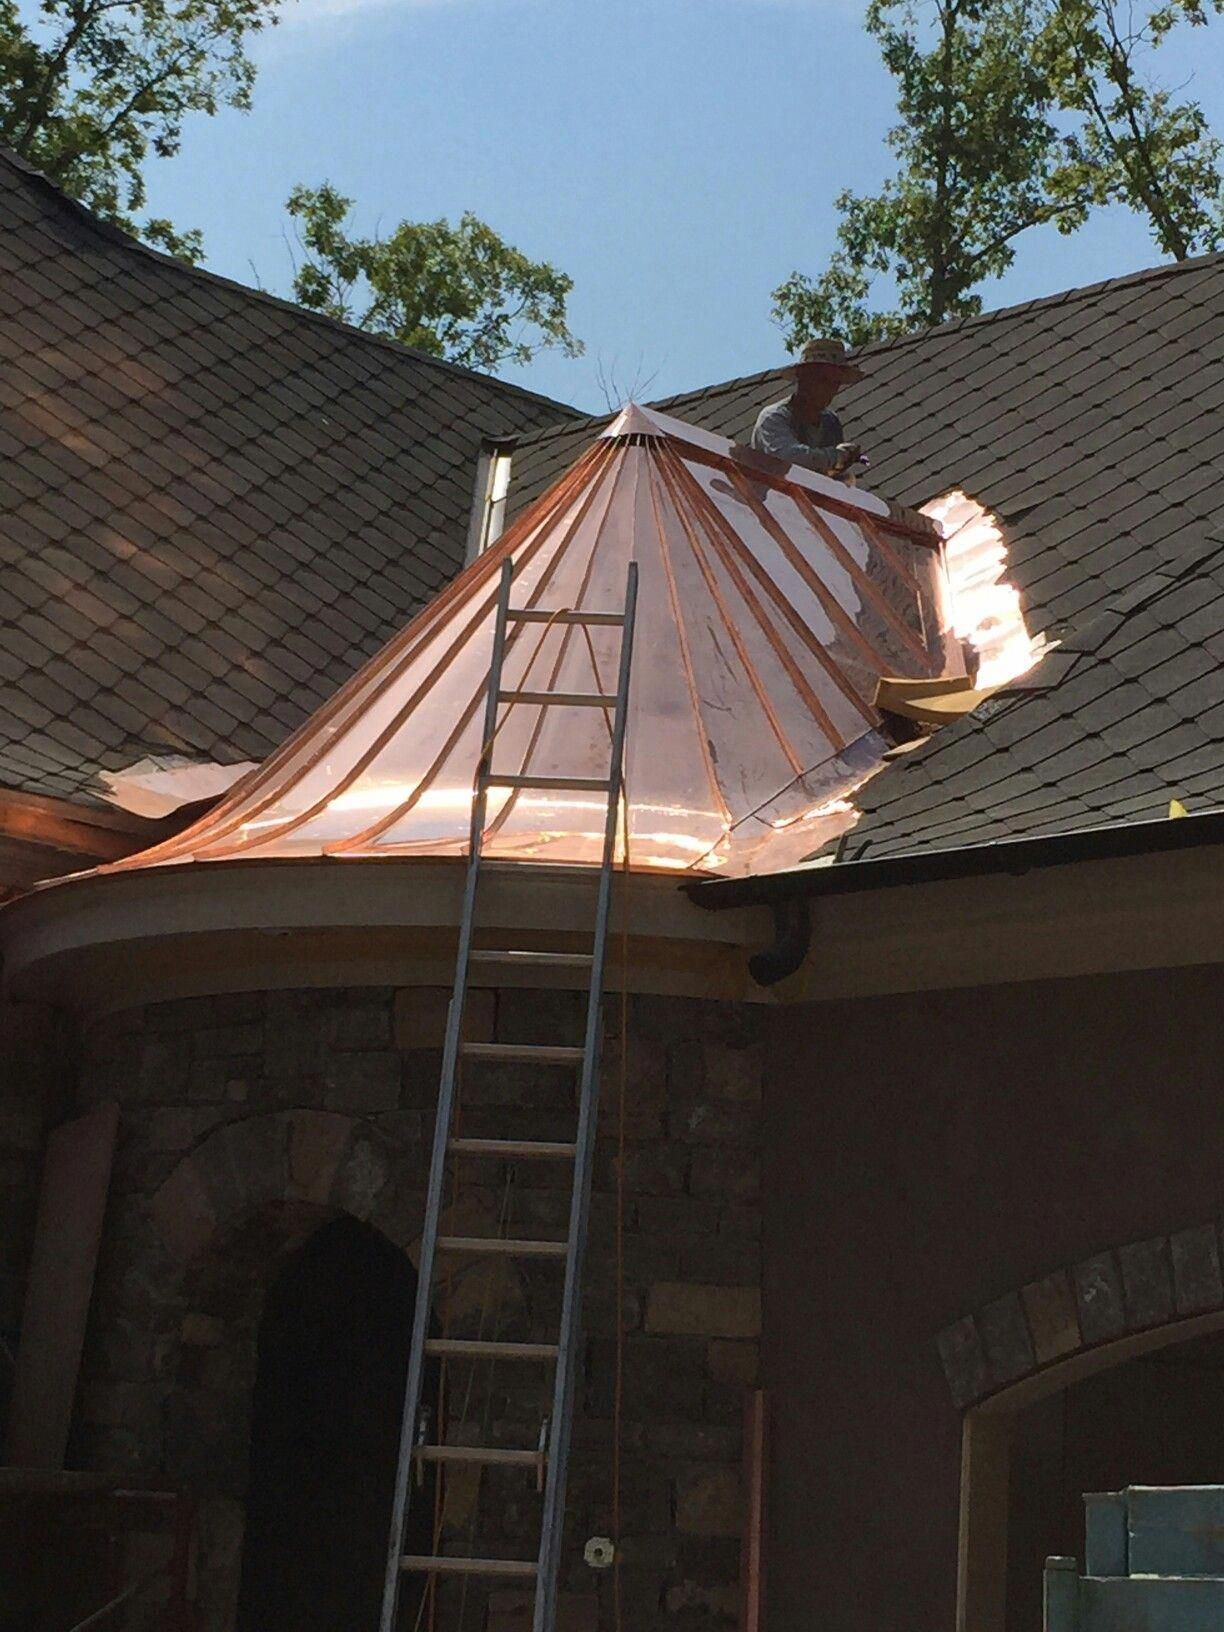 Somephoto Beautiful Tips For Guttersplanter In 2020 Copper In Architecture Copper Roof Metal Roof